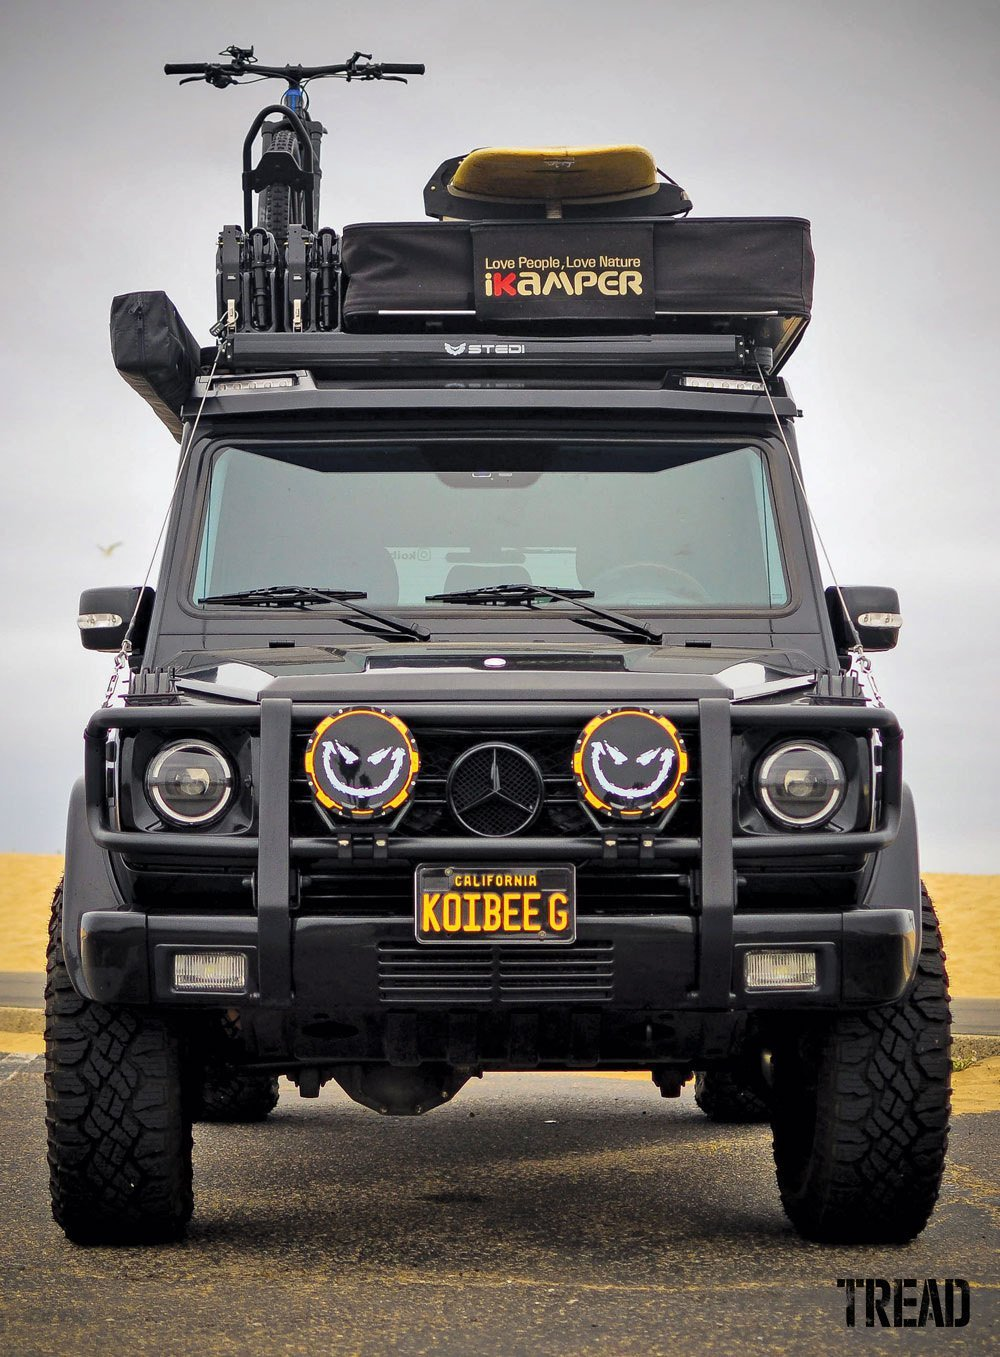 2003 Mercedes-Benz G 500 with large aux lights, ready for adventure